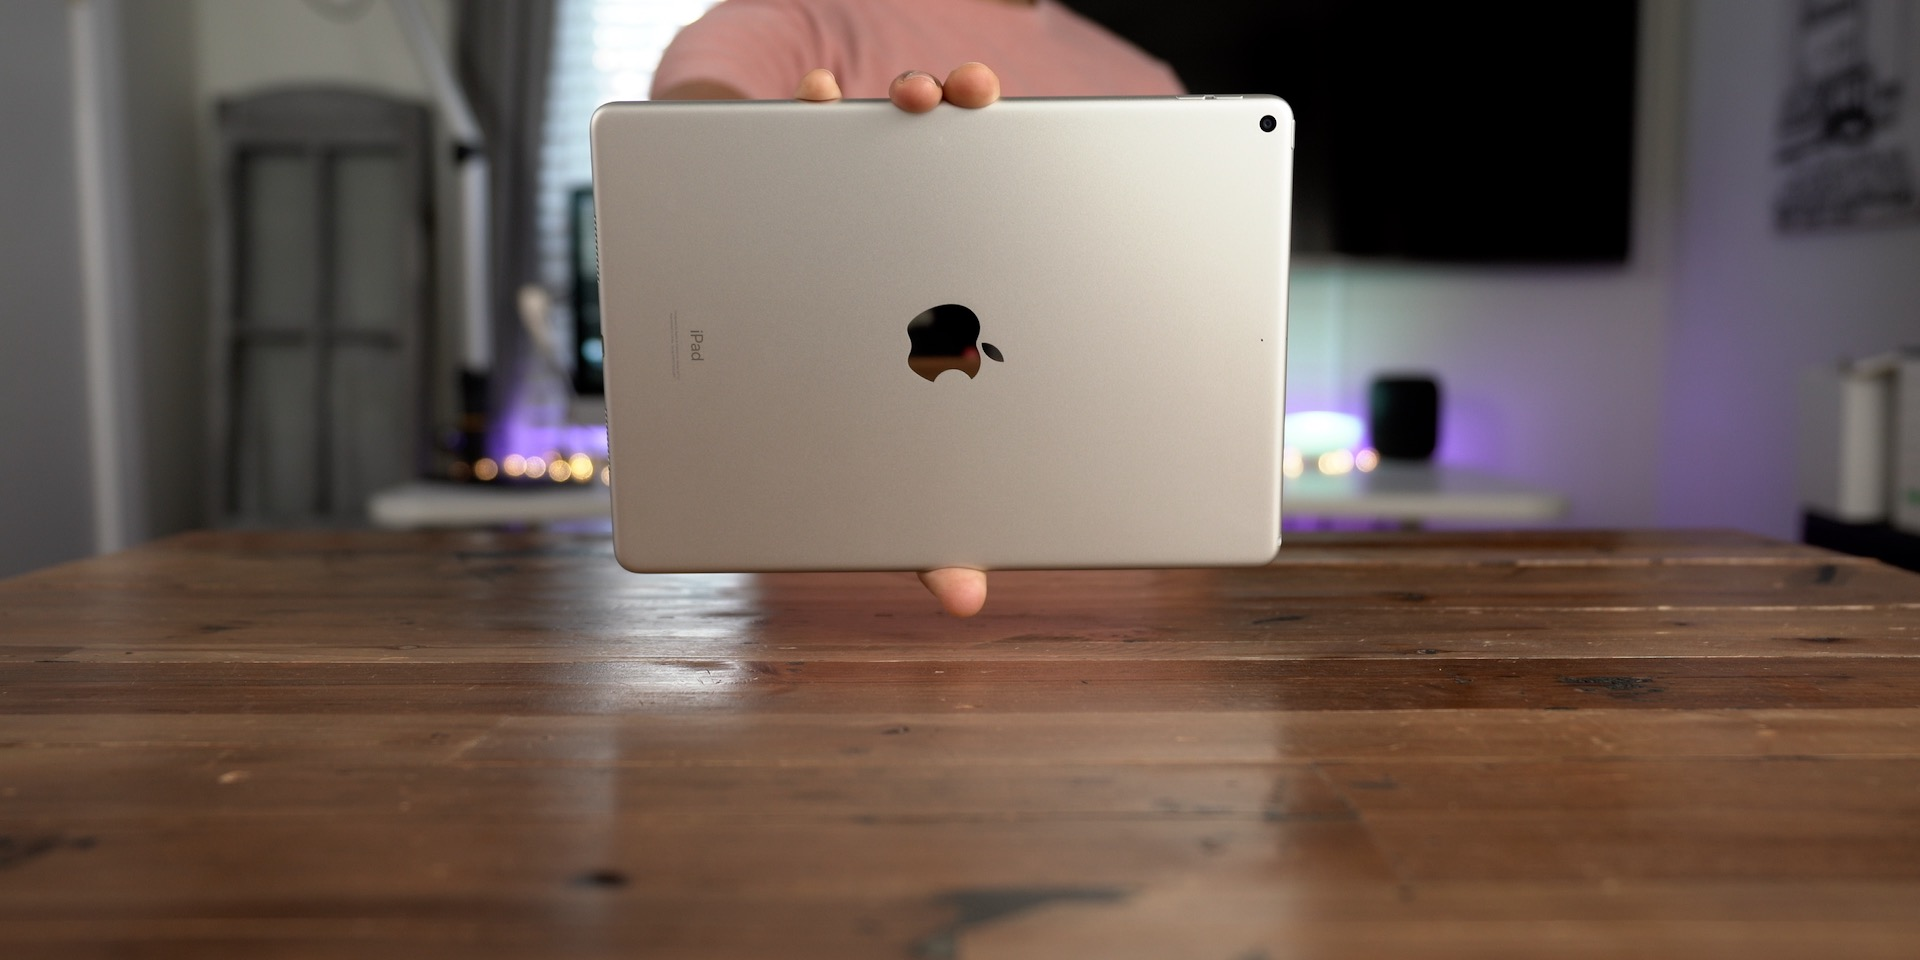 iPad Air 3 rear